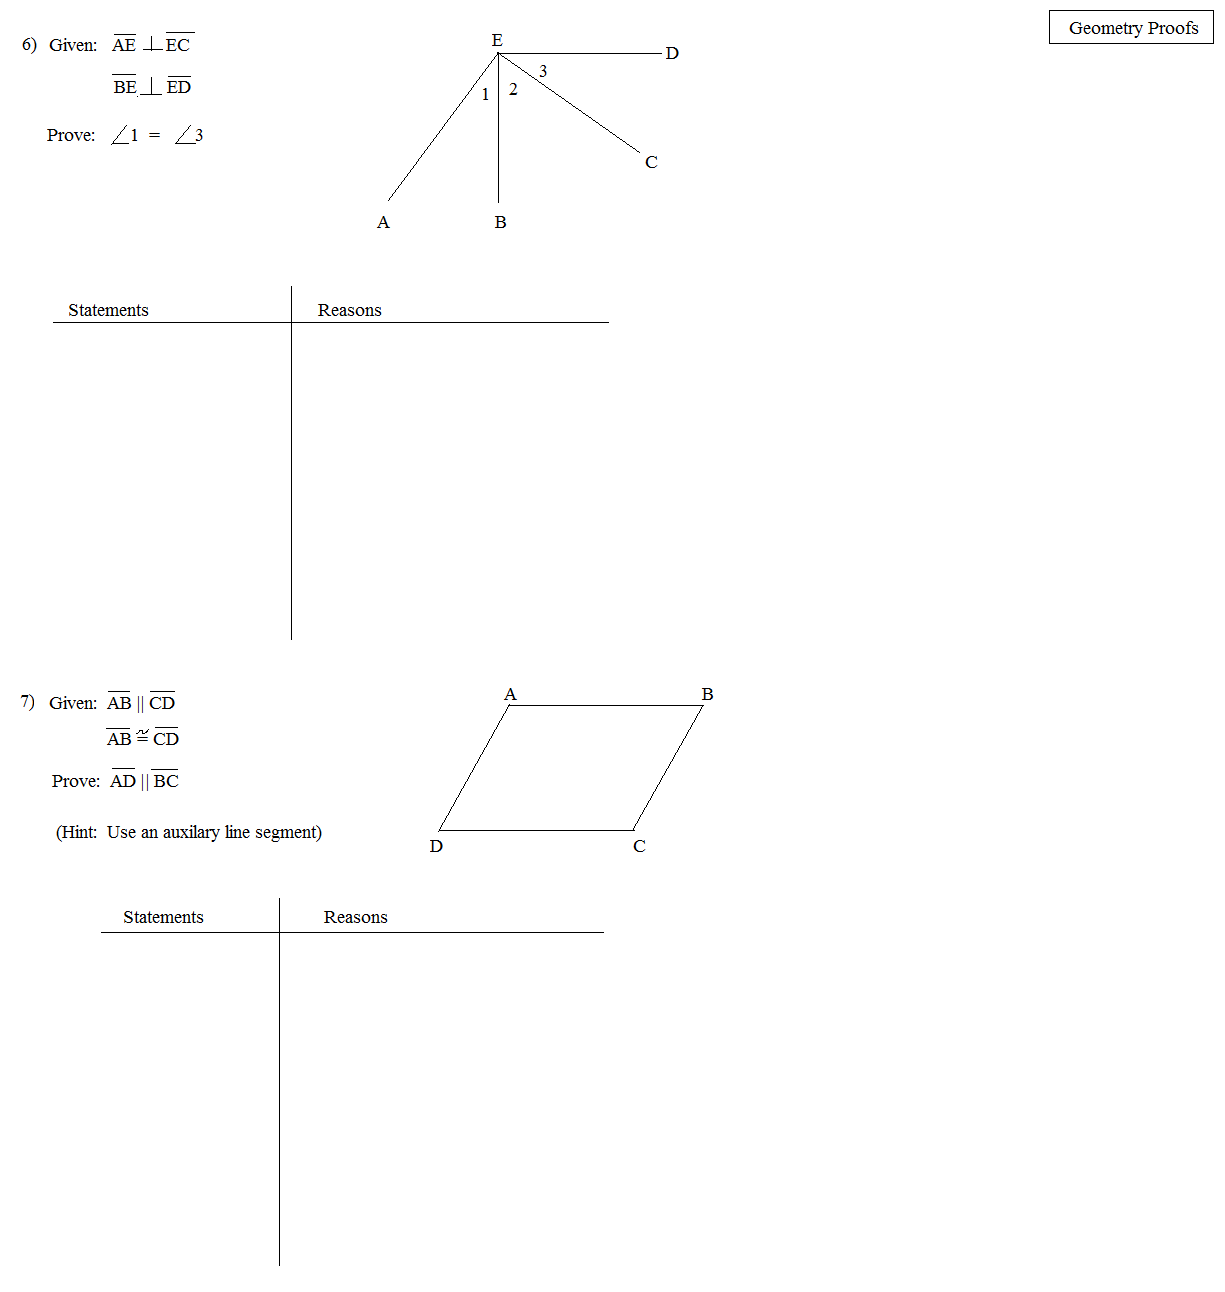 Math Plane Proofs Postulates 1 Worksheet – Geometry Proofs Worksheets with Answers